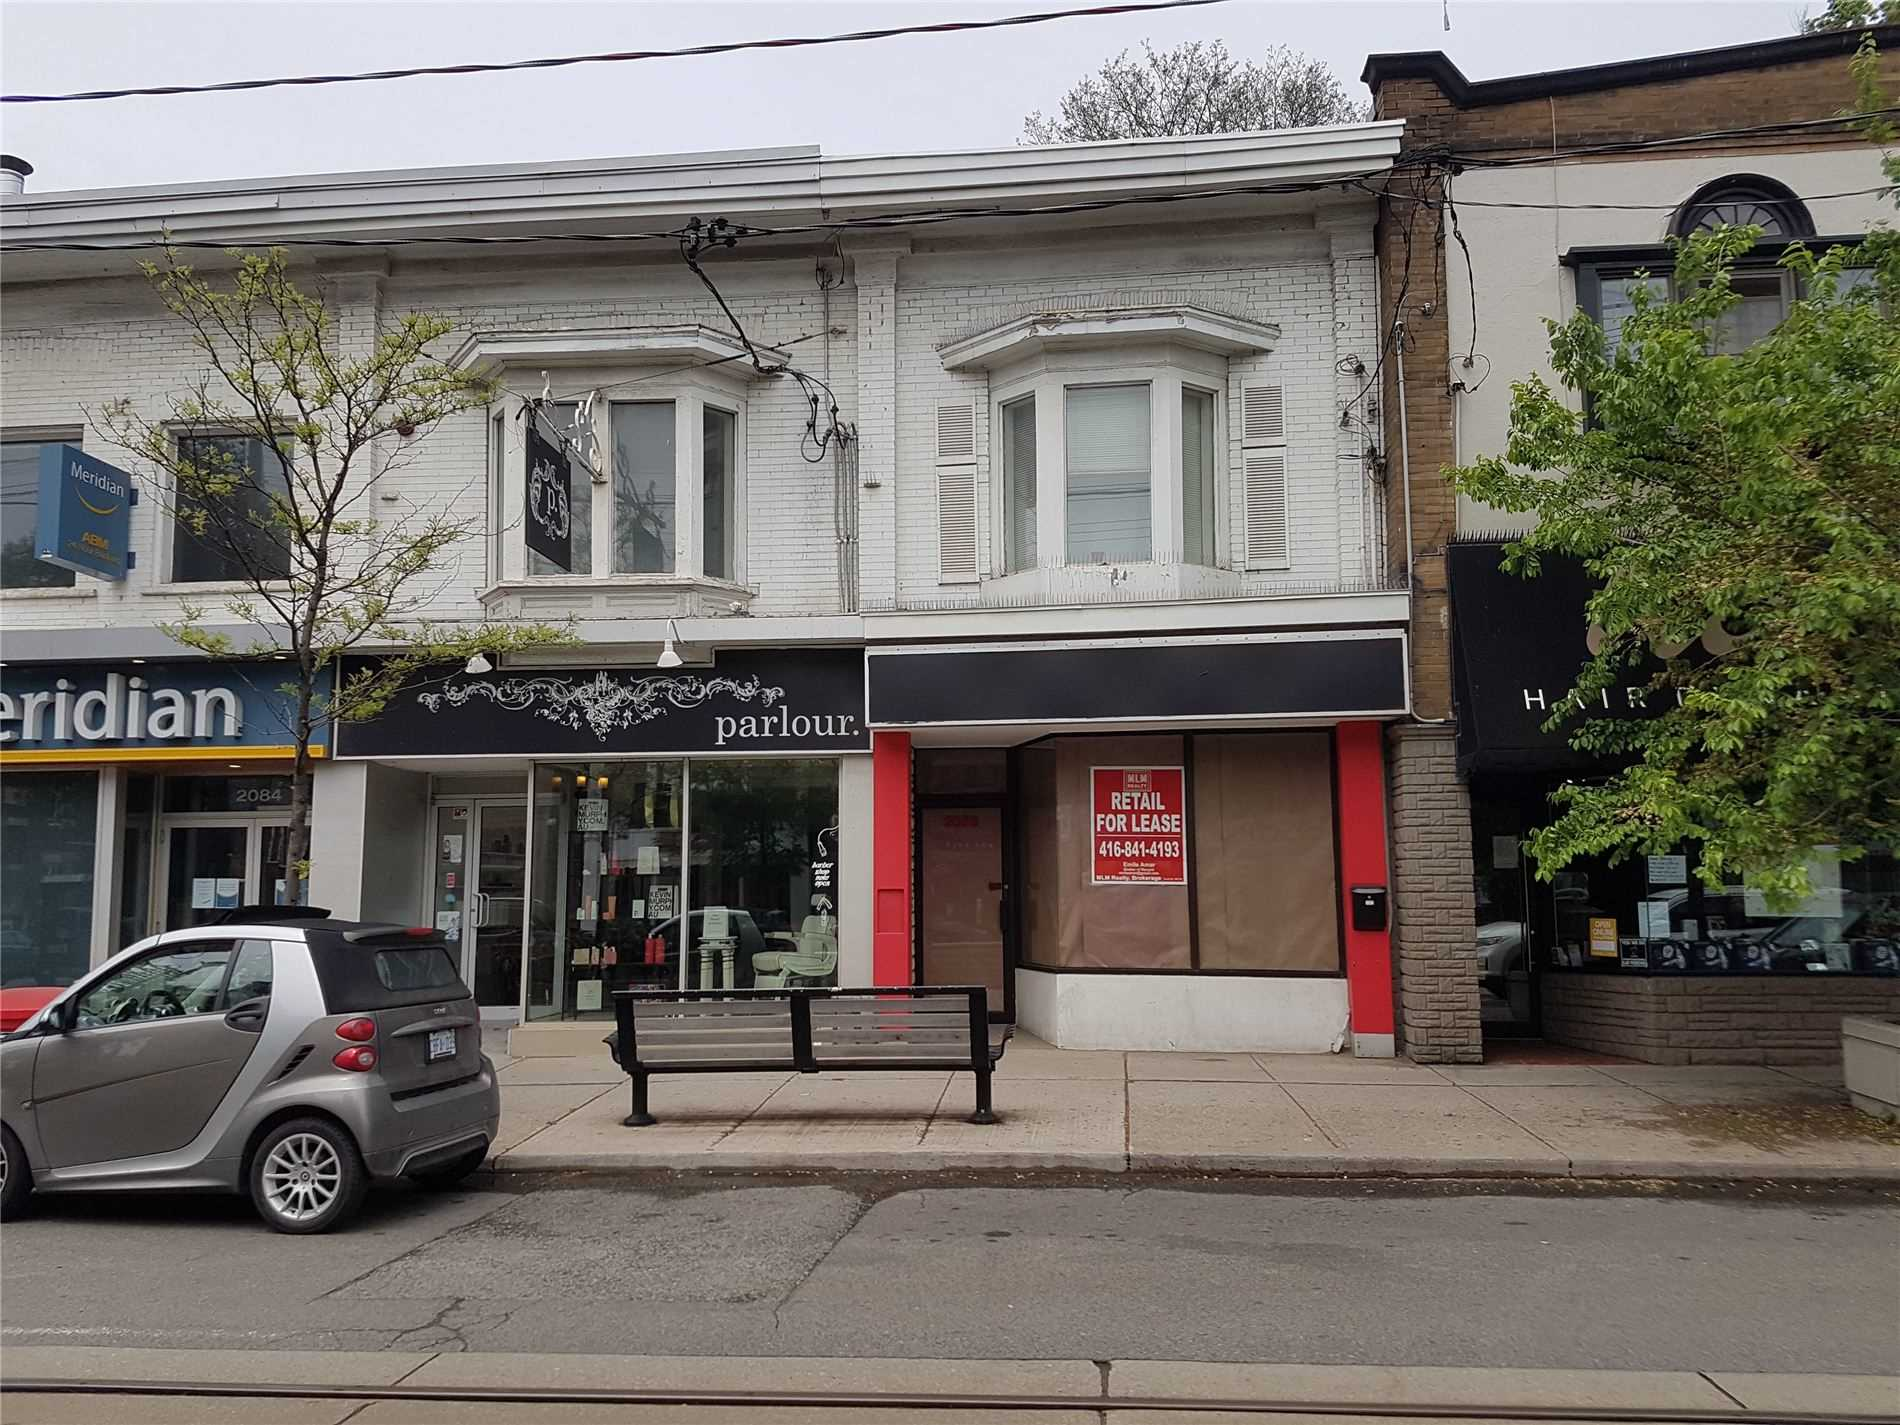 Commercial/retail For Lease In Toronto , ,1 BathroomBathrooms,Commercial/retail,For Lease,Queen